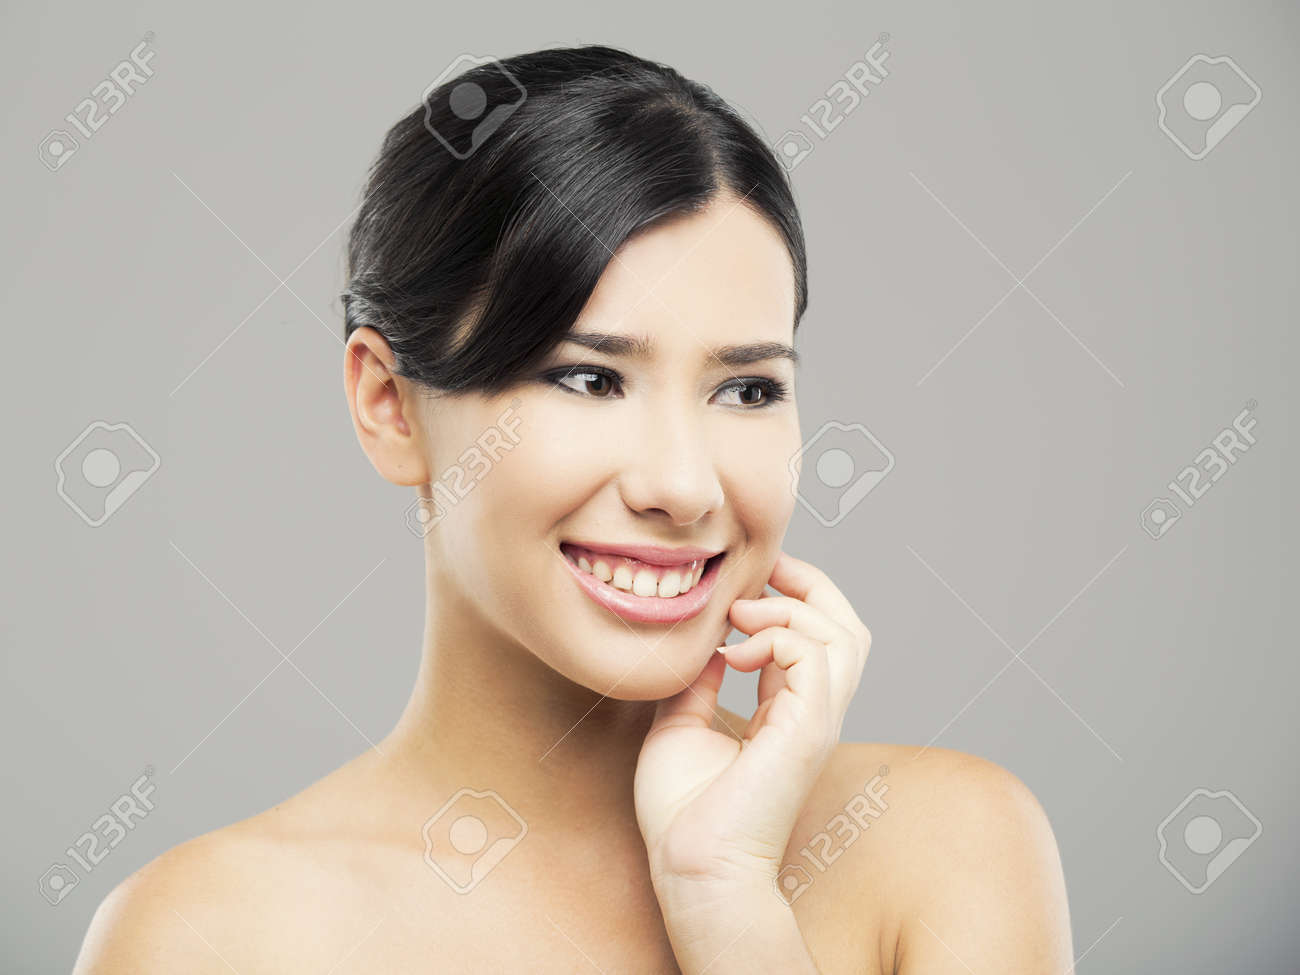 Beauty portrait of young asian woman with a beautiful smile, over a gray background Stock Photo - 18971887